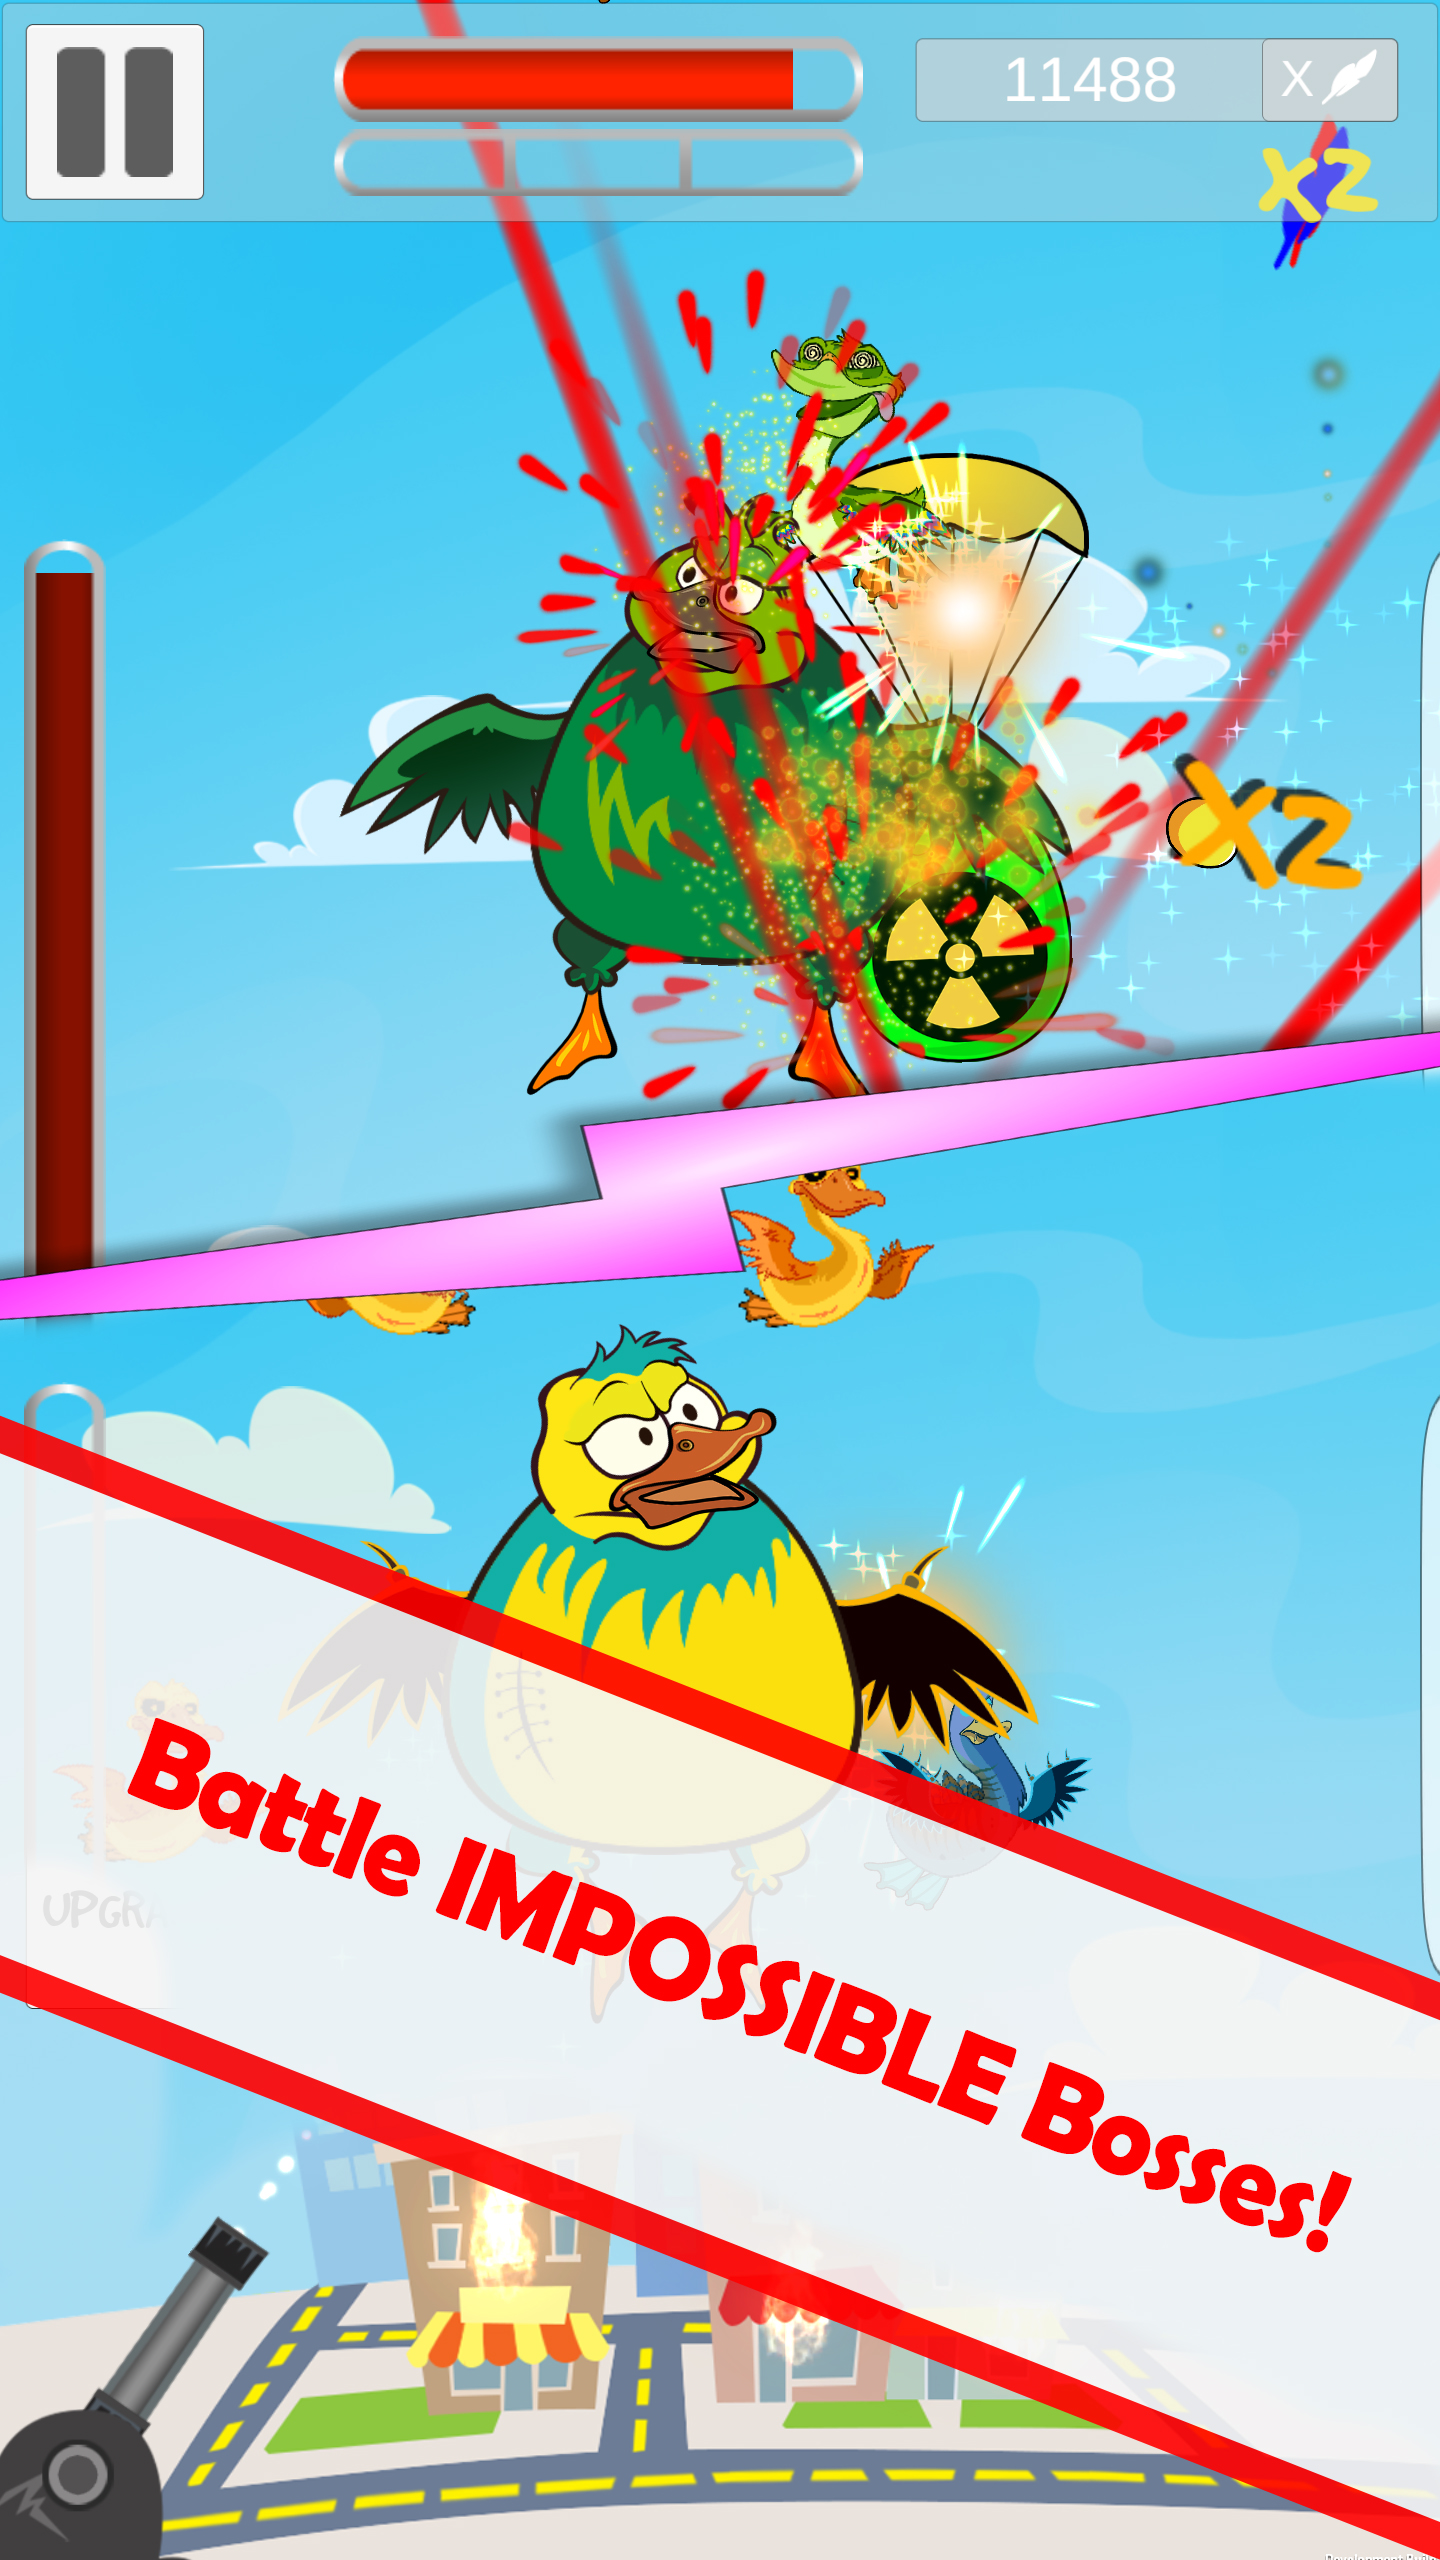 Mutant Duck Invasion Battle impossible bosses.